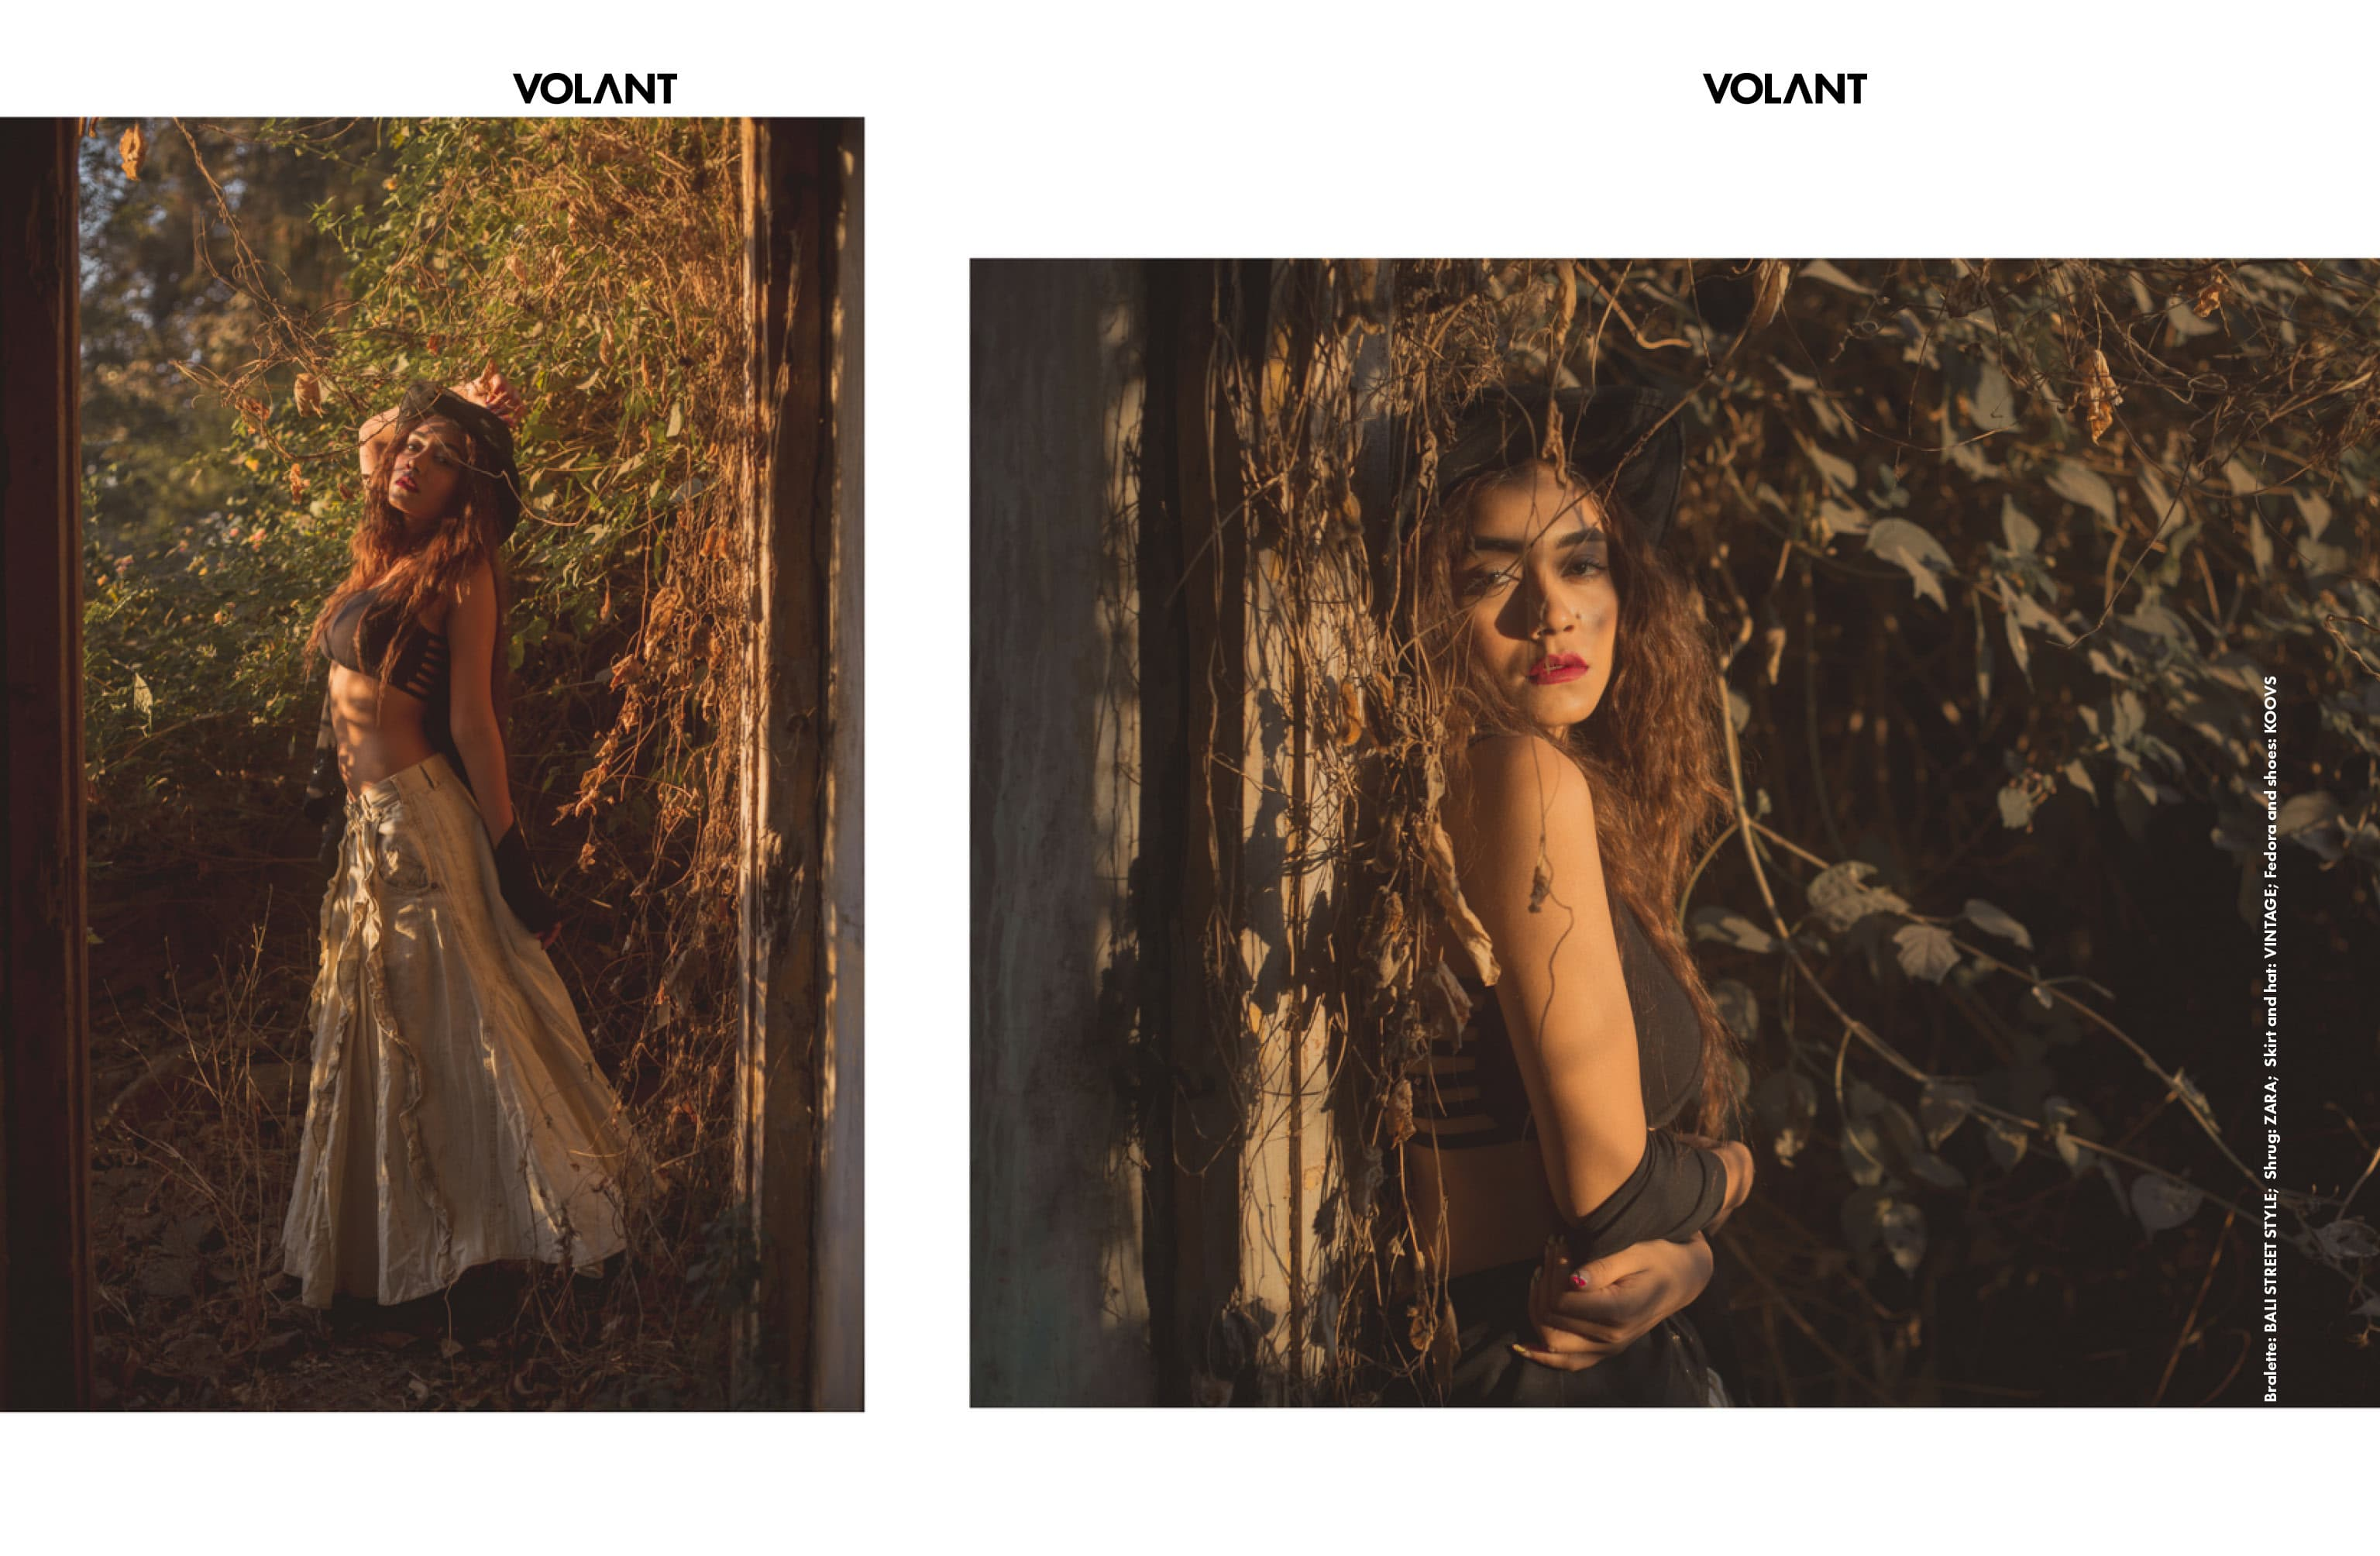 volant-webitorial-todayiwillletthepicturestalk4